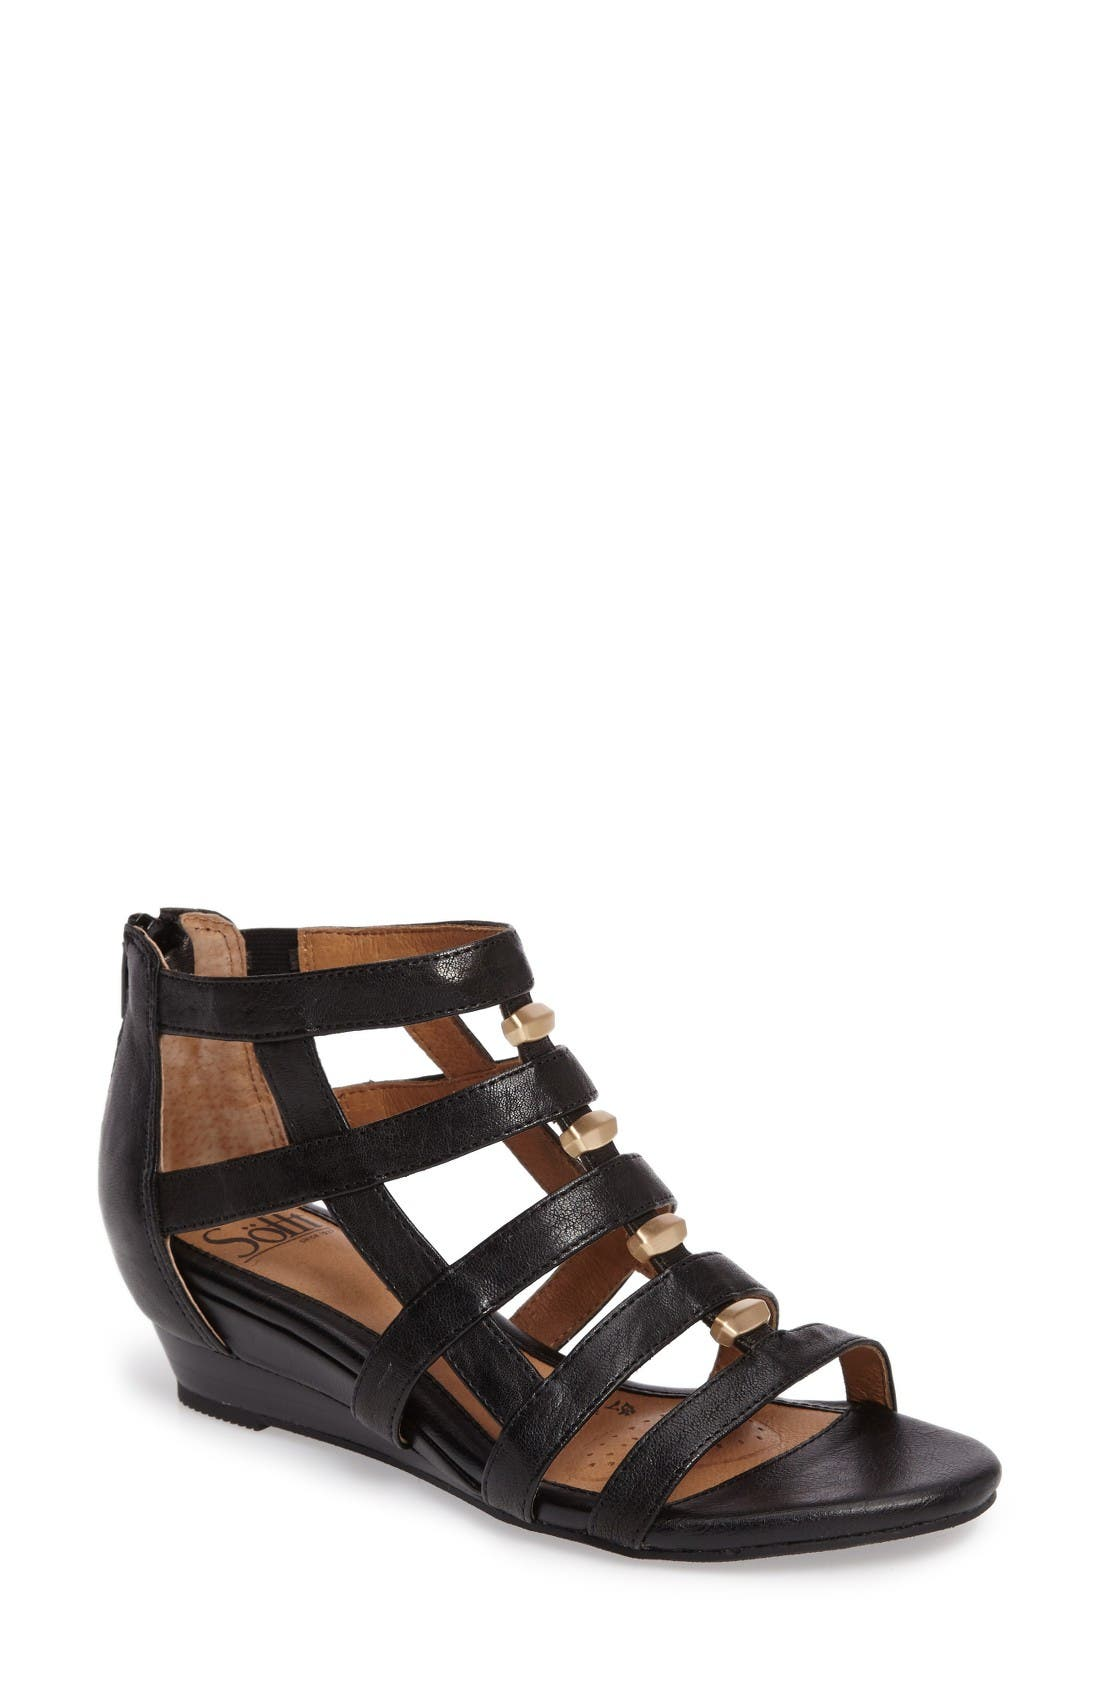 Söfft Rio Gladiator Wedge Sandal (Women)